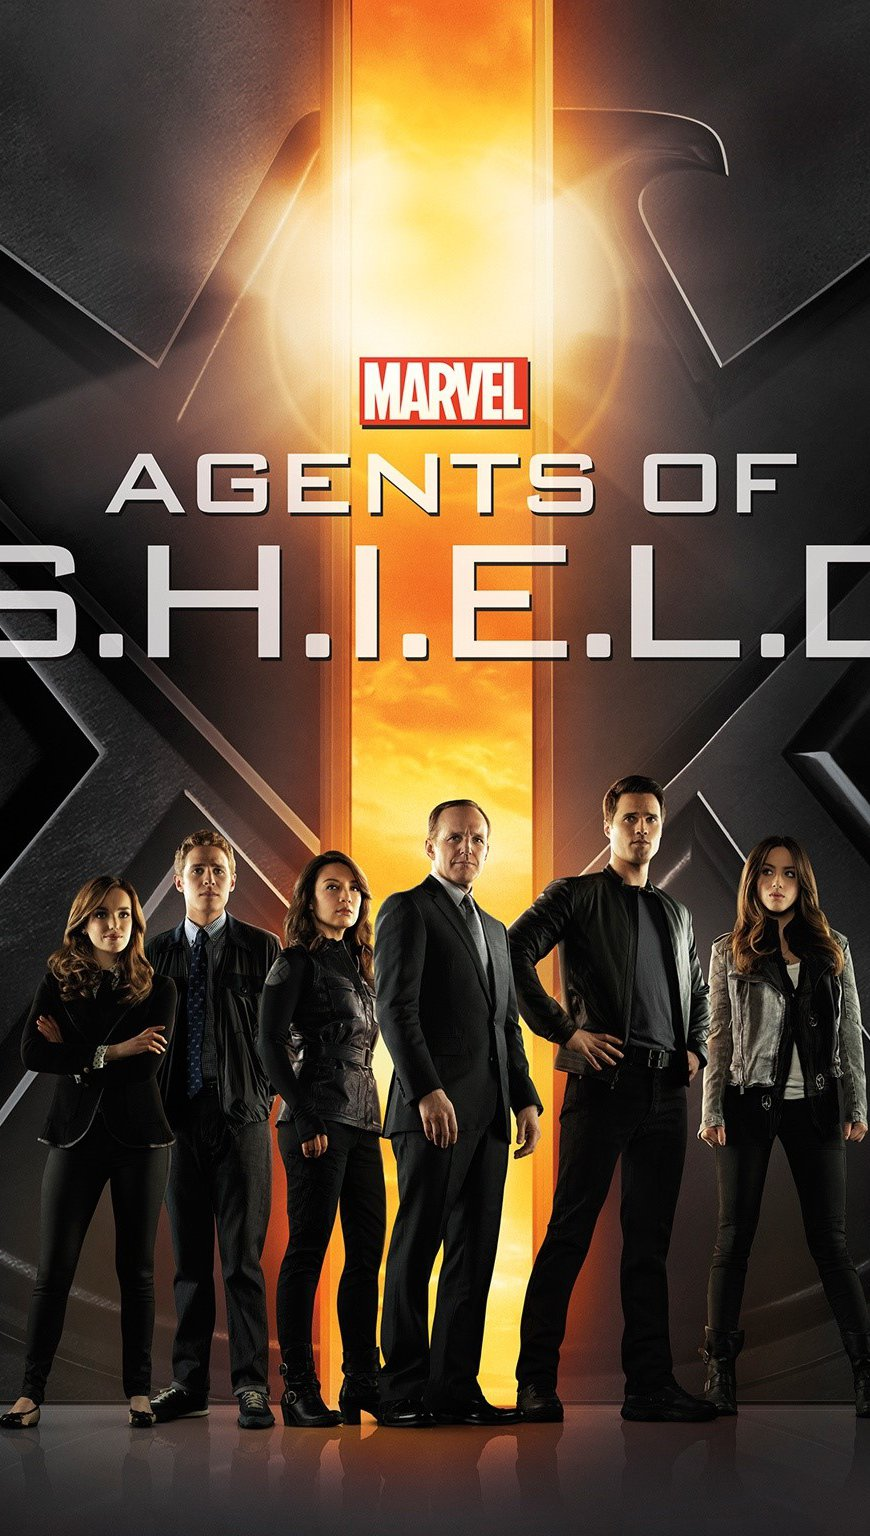 Fondos de pantalla Agents of shield Vertical